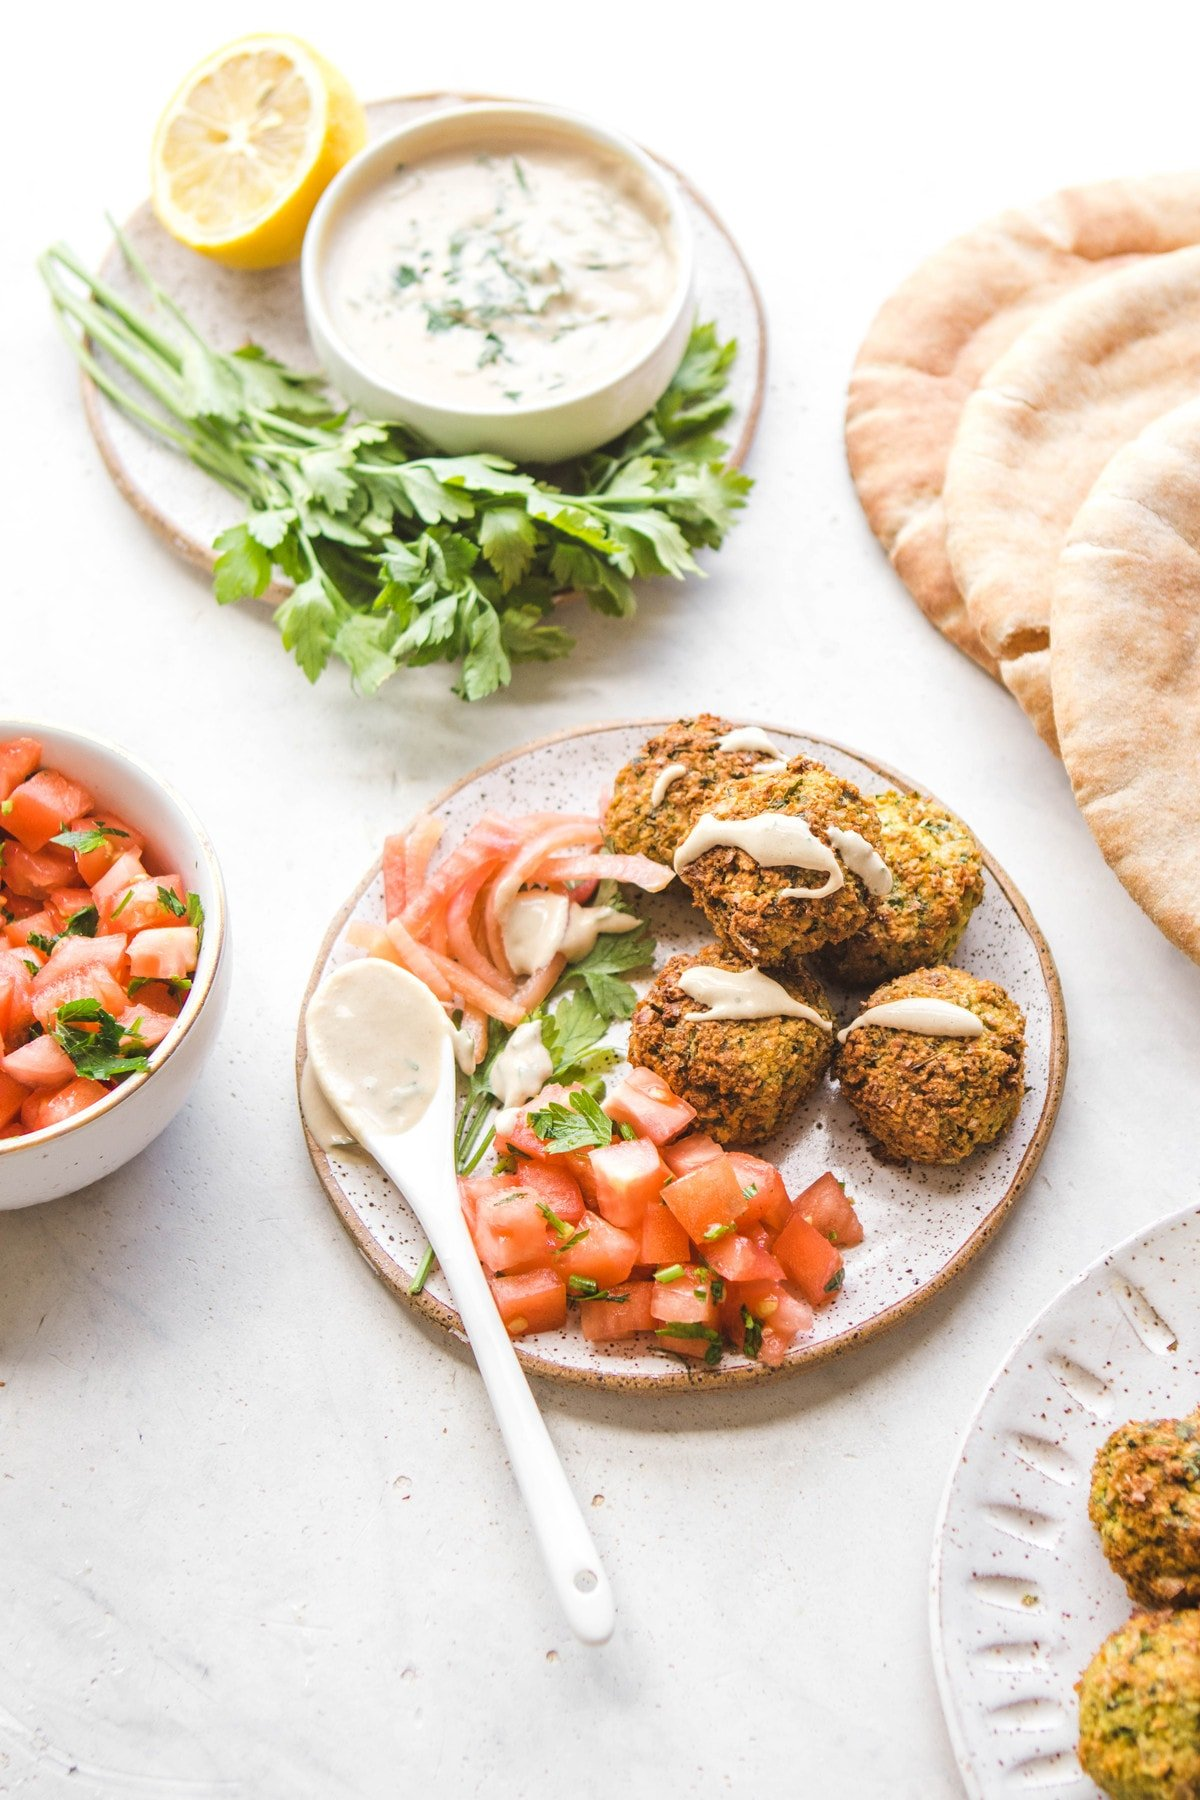 falafel with tahini sauce and chopped tomatoes